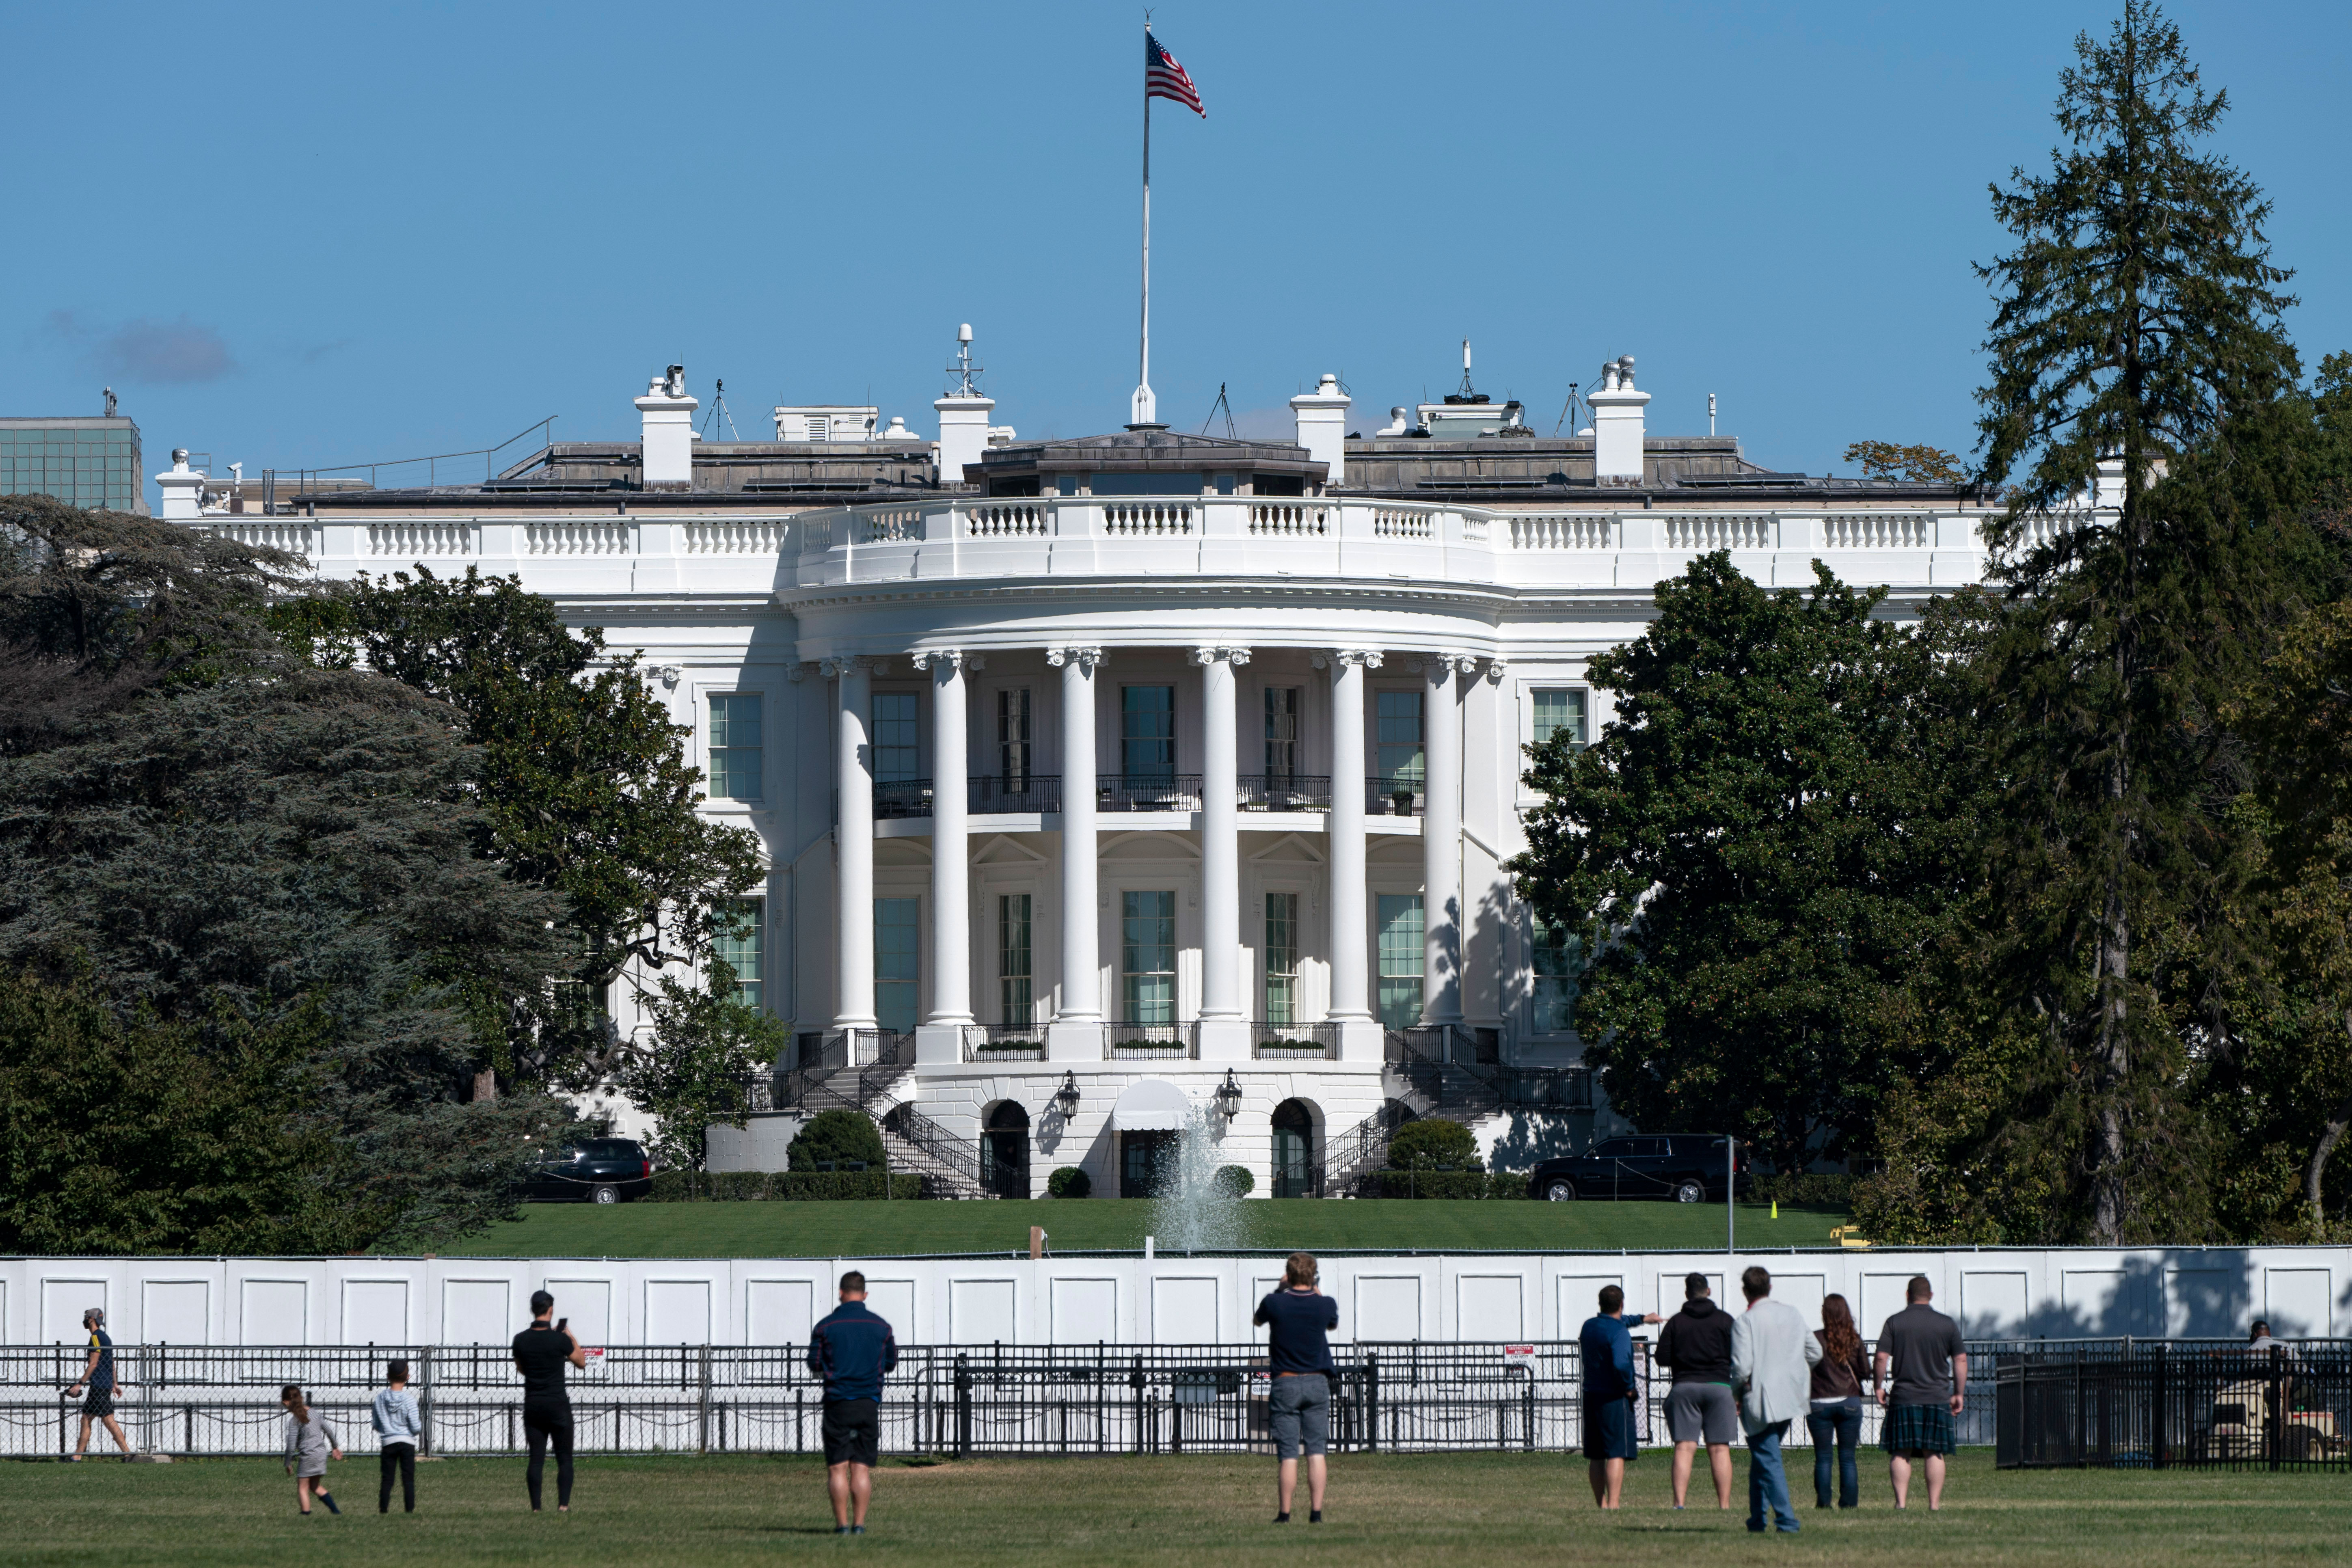 People take pictures of the White House on October 8.